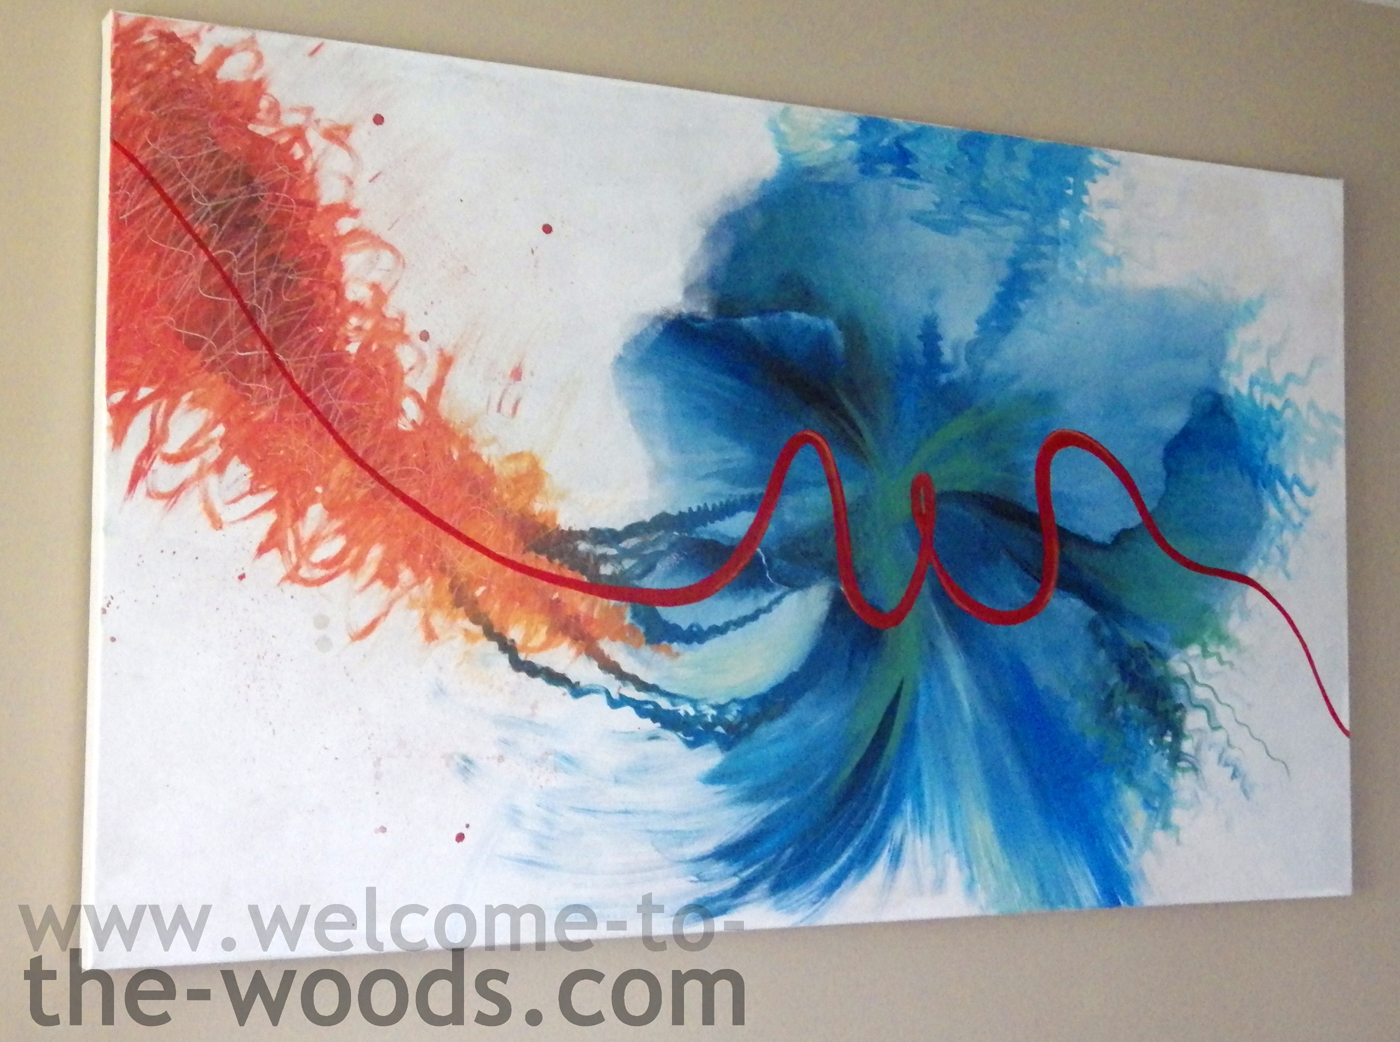 Abstract Family Painting Welcome To The Woods